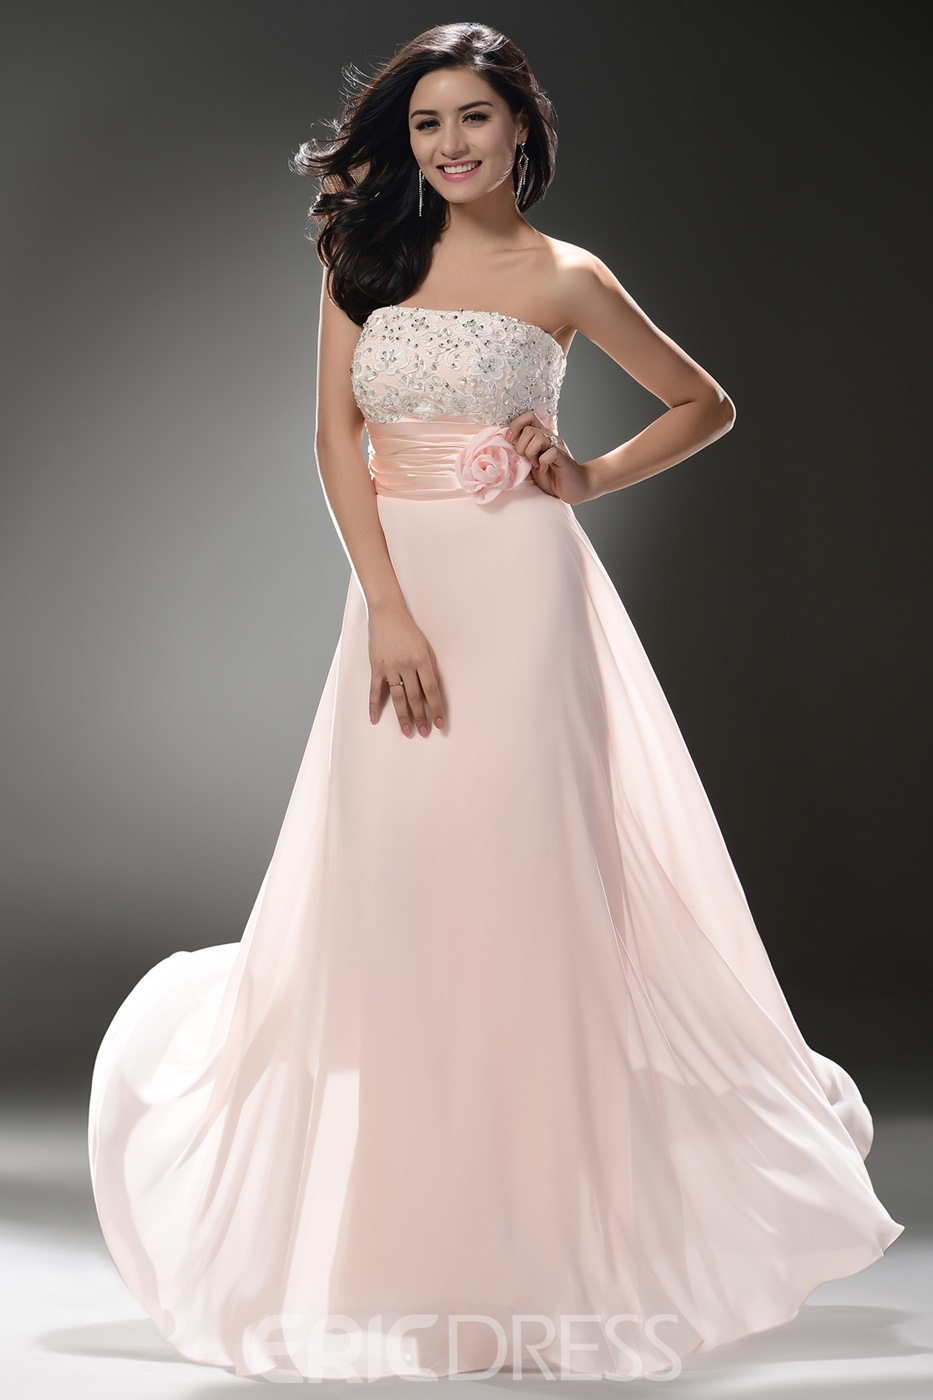 Strapless Beaded Empire Column Shape Floor Length Skirt with Hamdmade Flower Decoration Beautiful Prom Dress